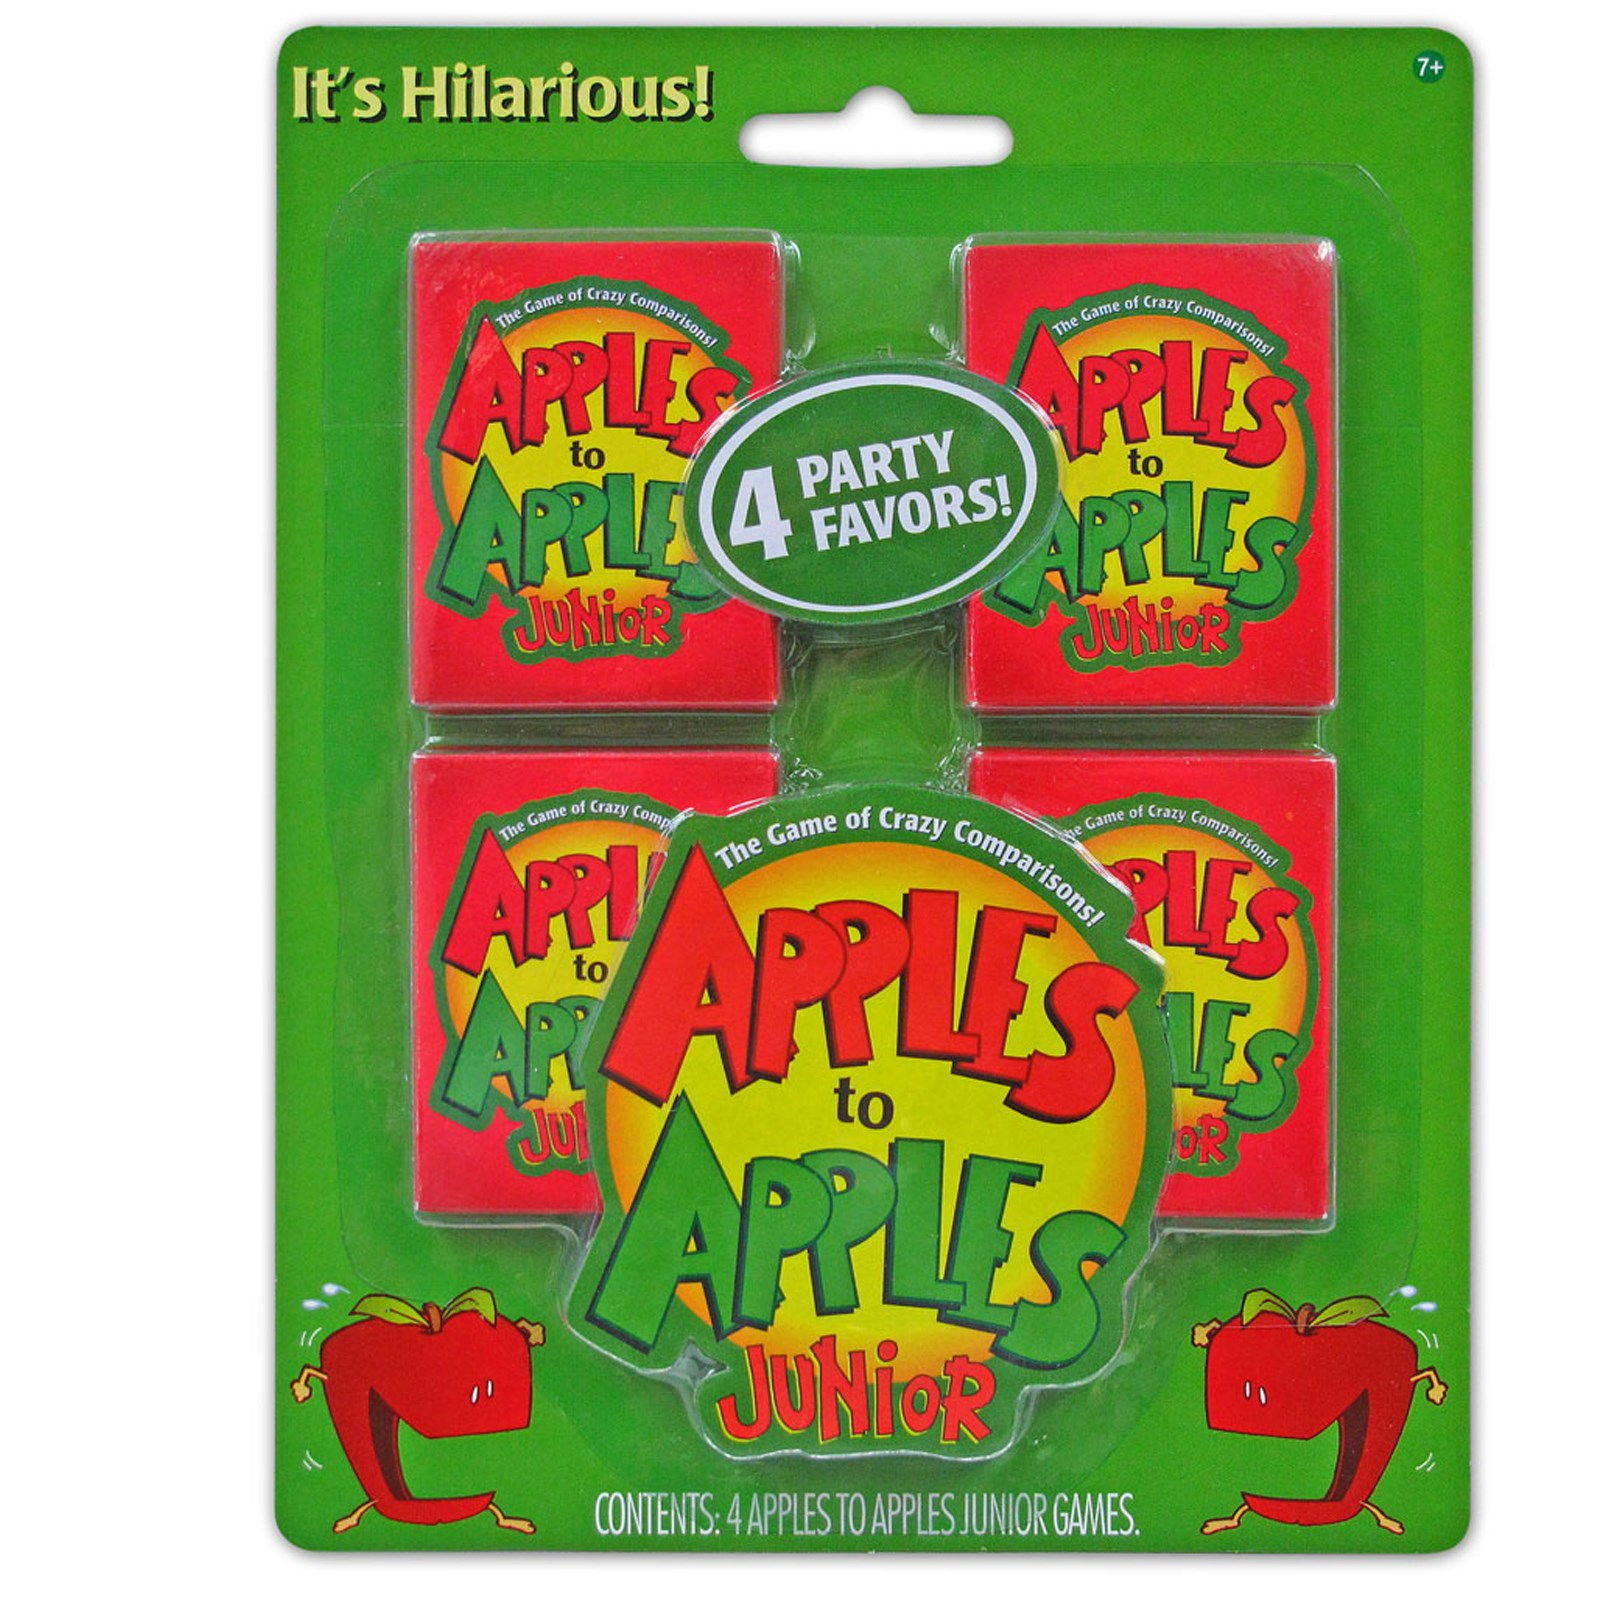 Image of Apples to Apples Junior Mini Card Games